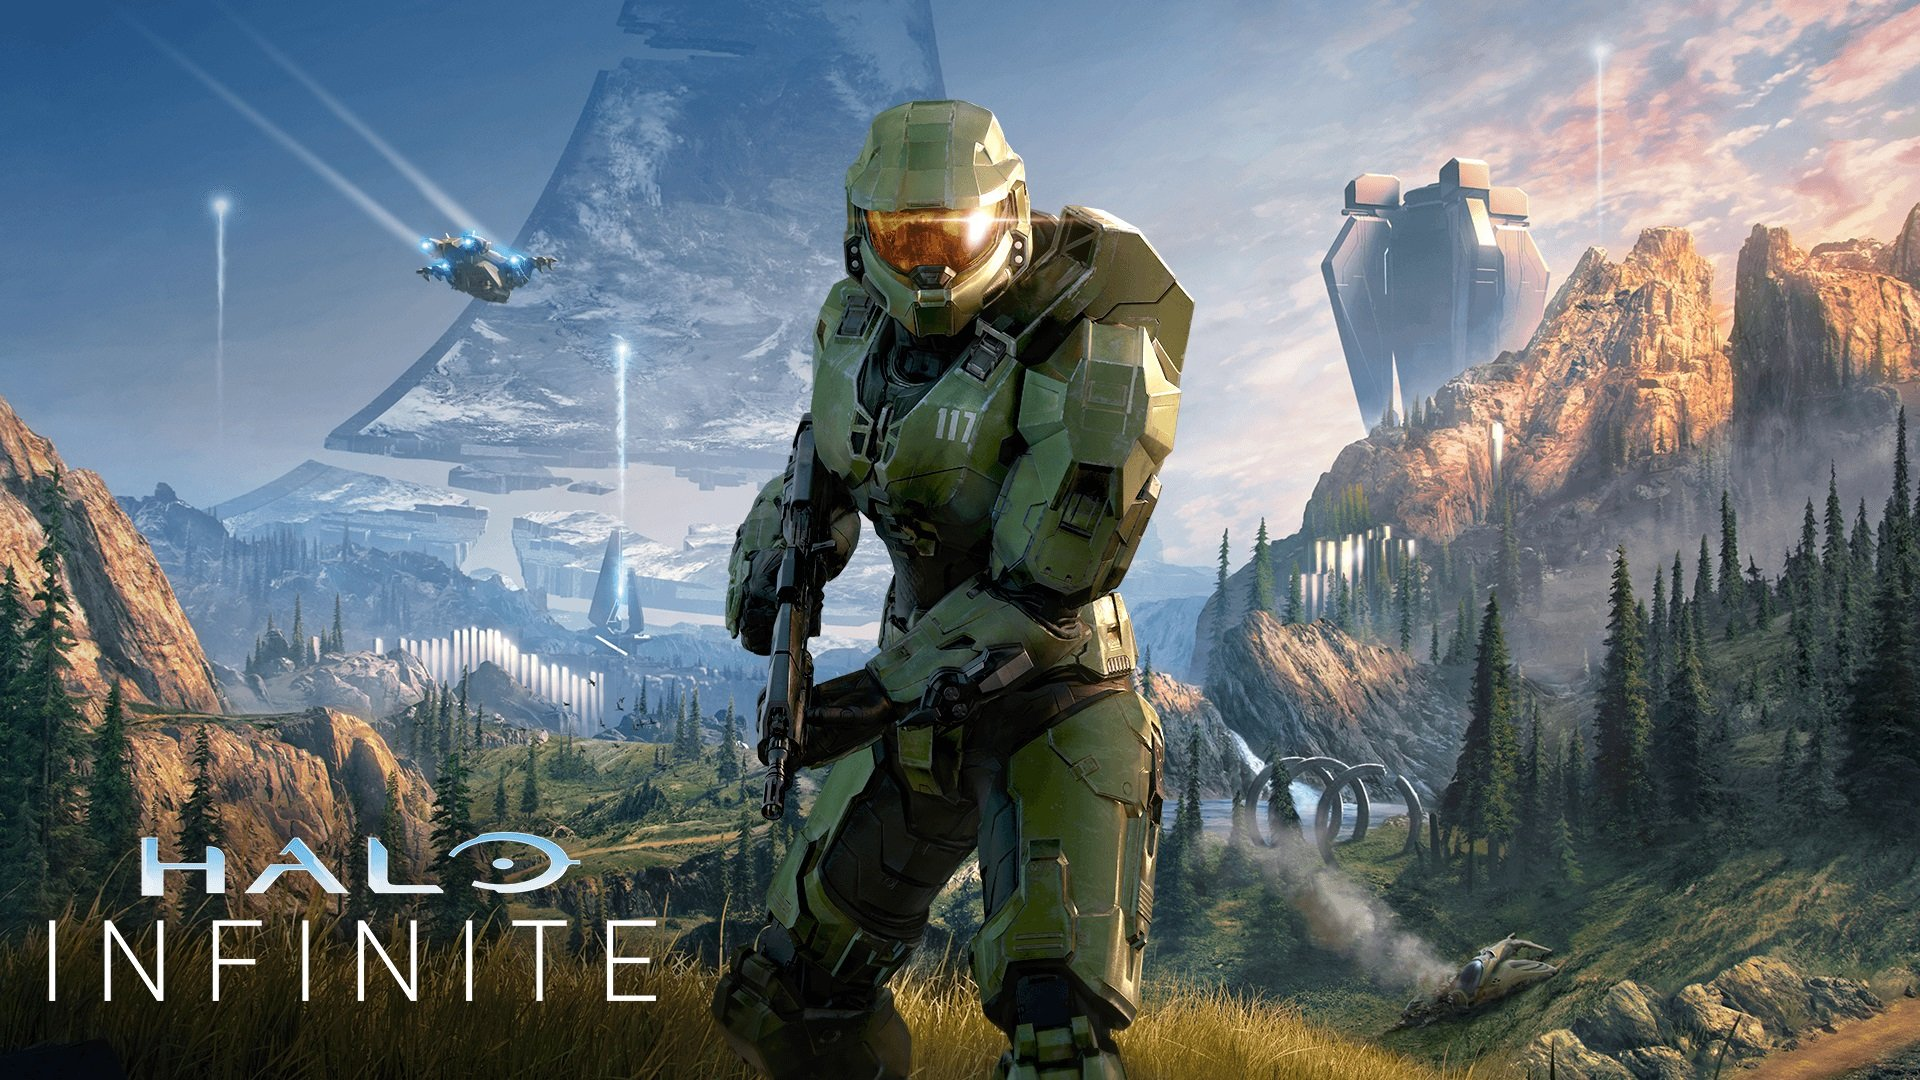 Halo Infinite is skipping The Game Awards, and that's probably for the best screenshot